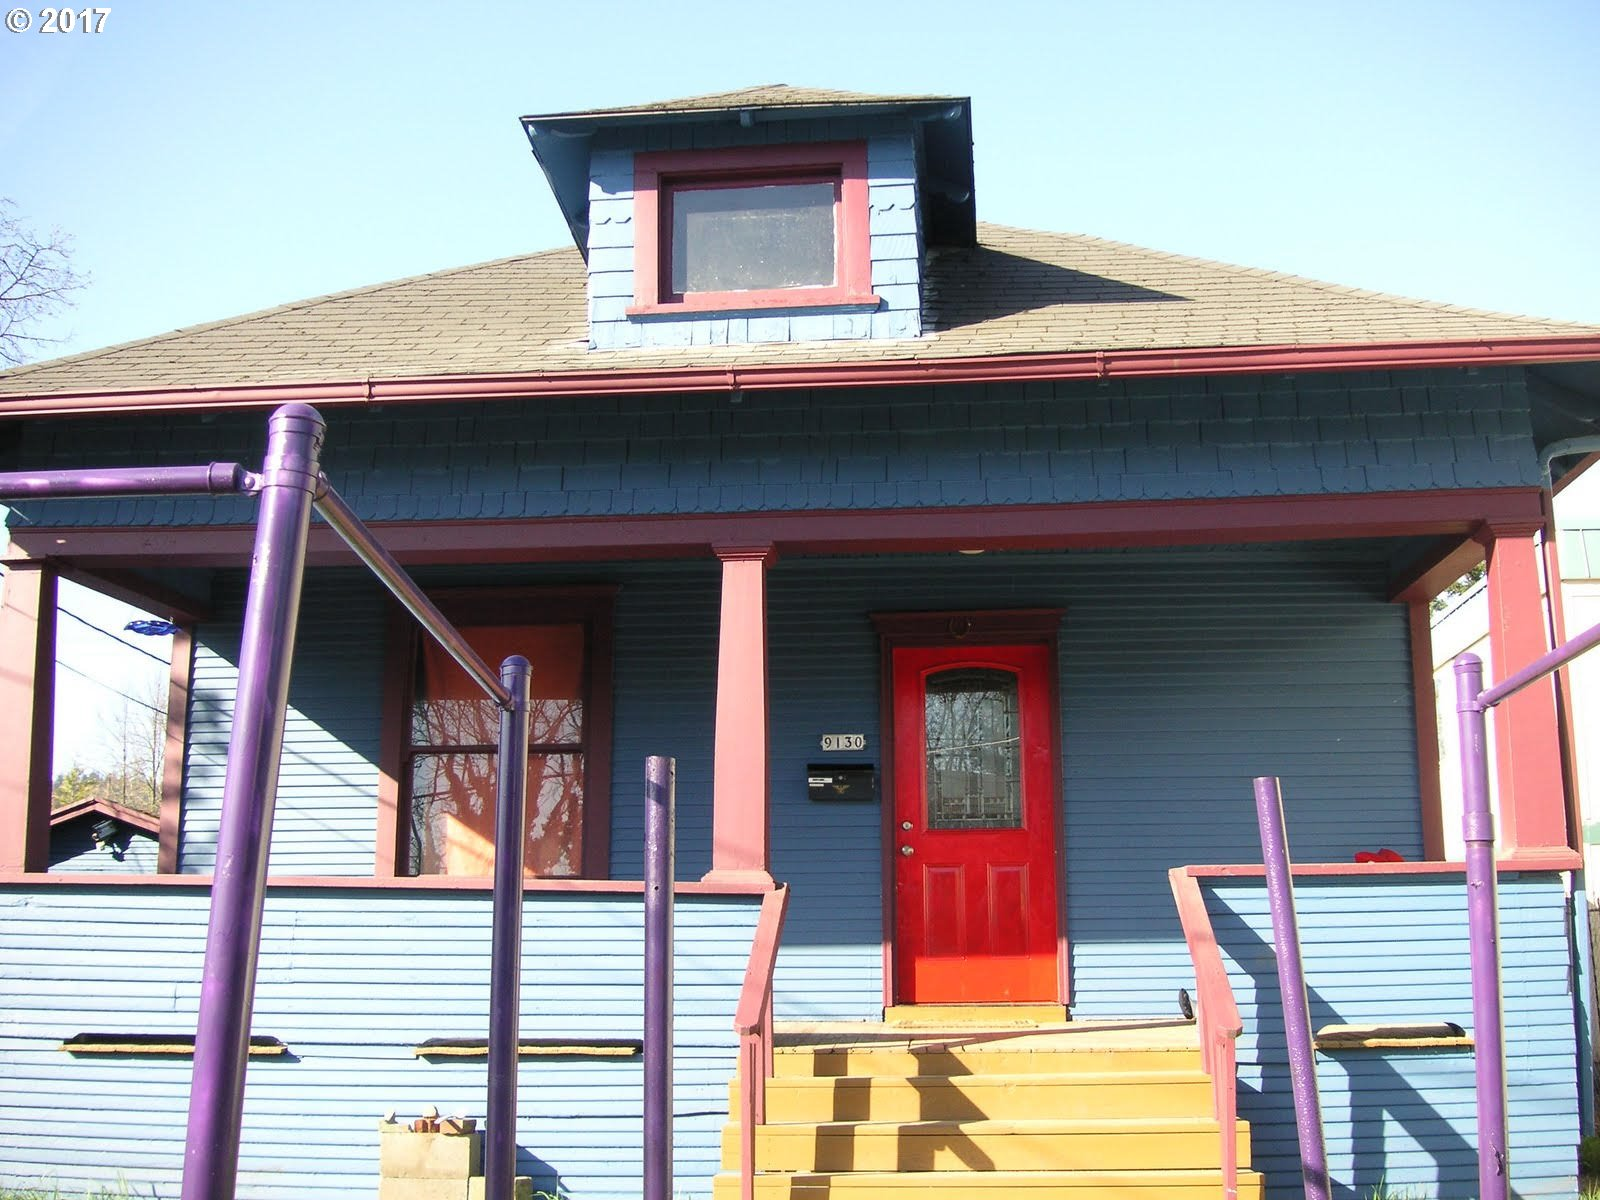 "Artist Vintage Portland Style Bungalow! Great Location to  Down town St Johns,walk score of ""88"".  Theater, Pub, shops & Cafes. Walk to Safeway and St Johns Bridge.Just 10 mins to Downtown Portland!. , Detached Garage/shop. Zoned R1 as Multi Dwelling , can be Duplex or Multi units, Condos or row houses  or ADU call 503-823-7526 for design review info."